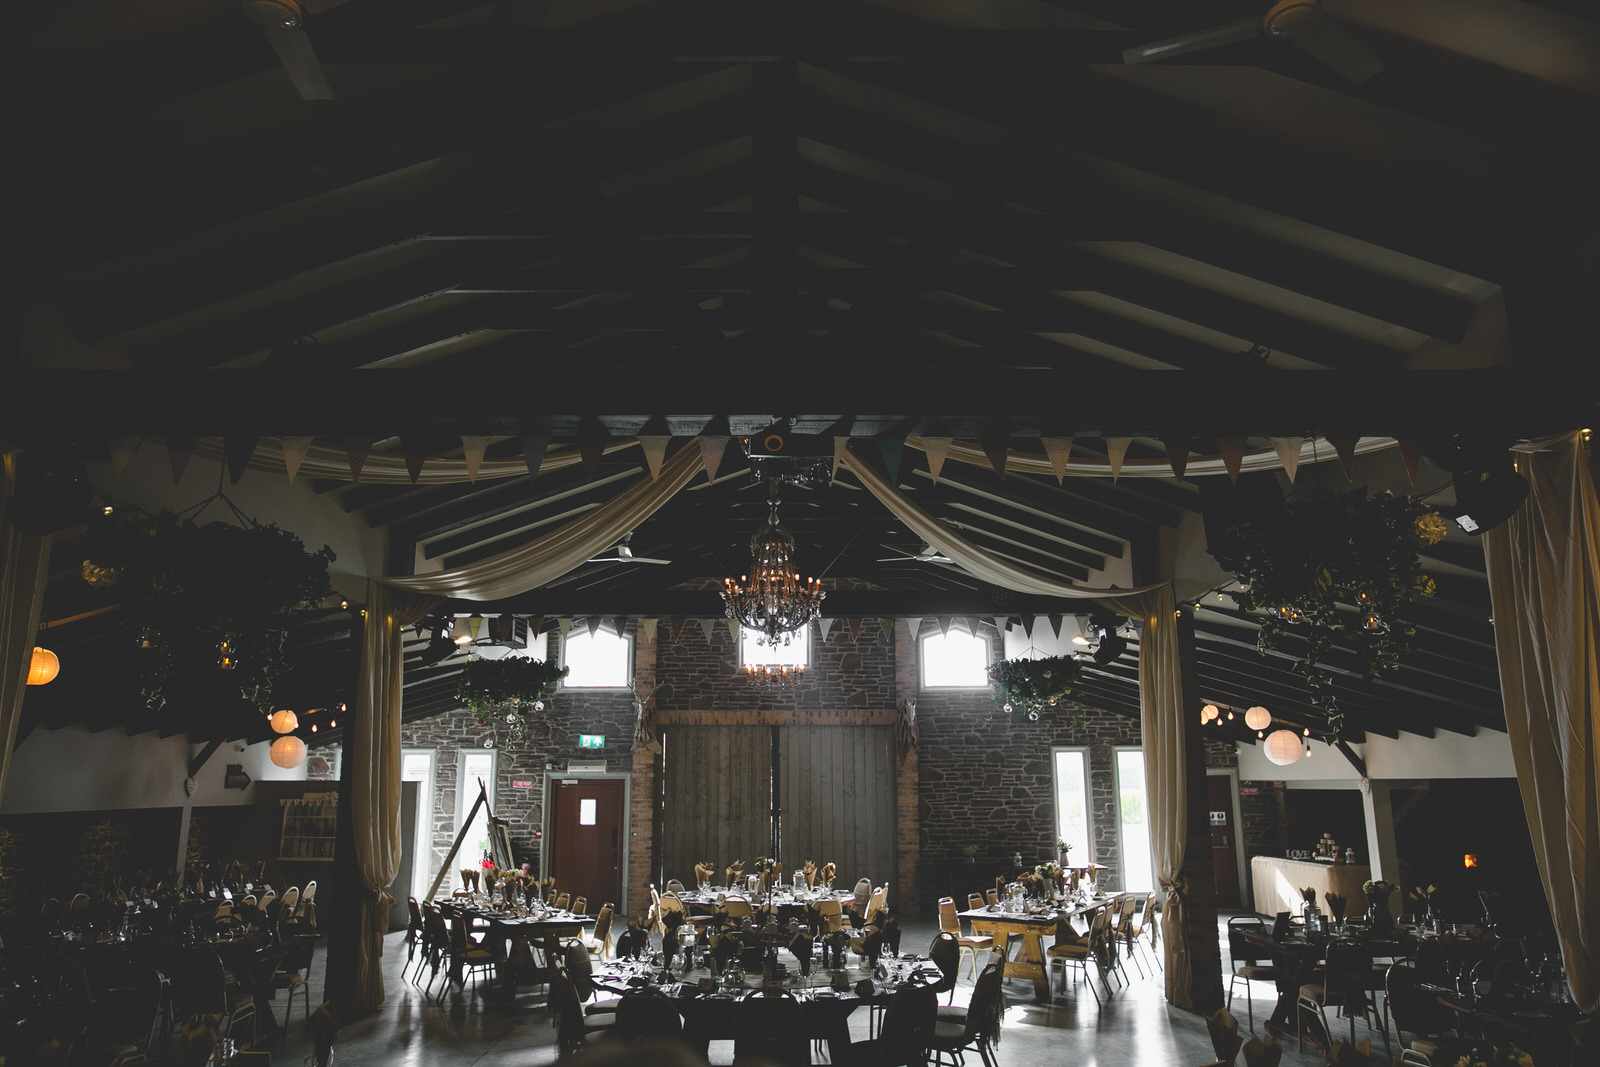 Epic dining room at Seagrave Barns wedding venue